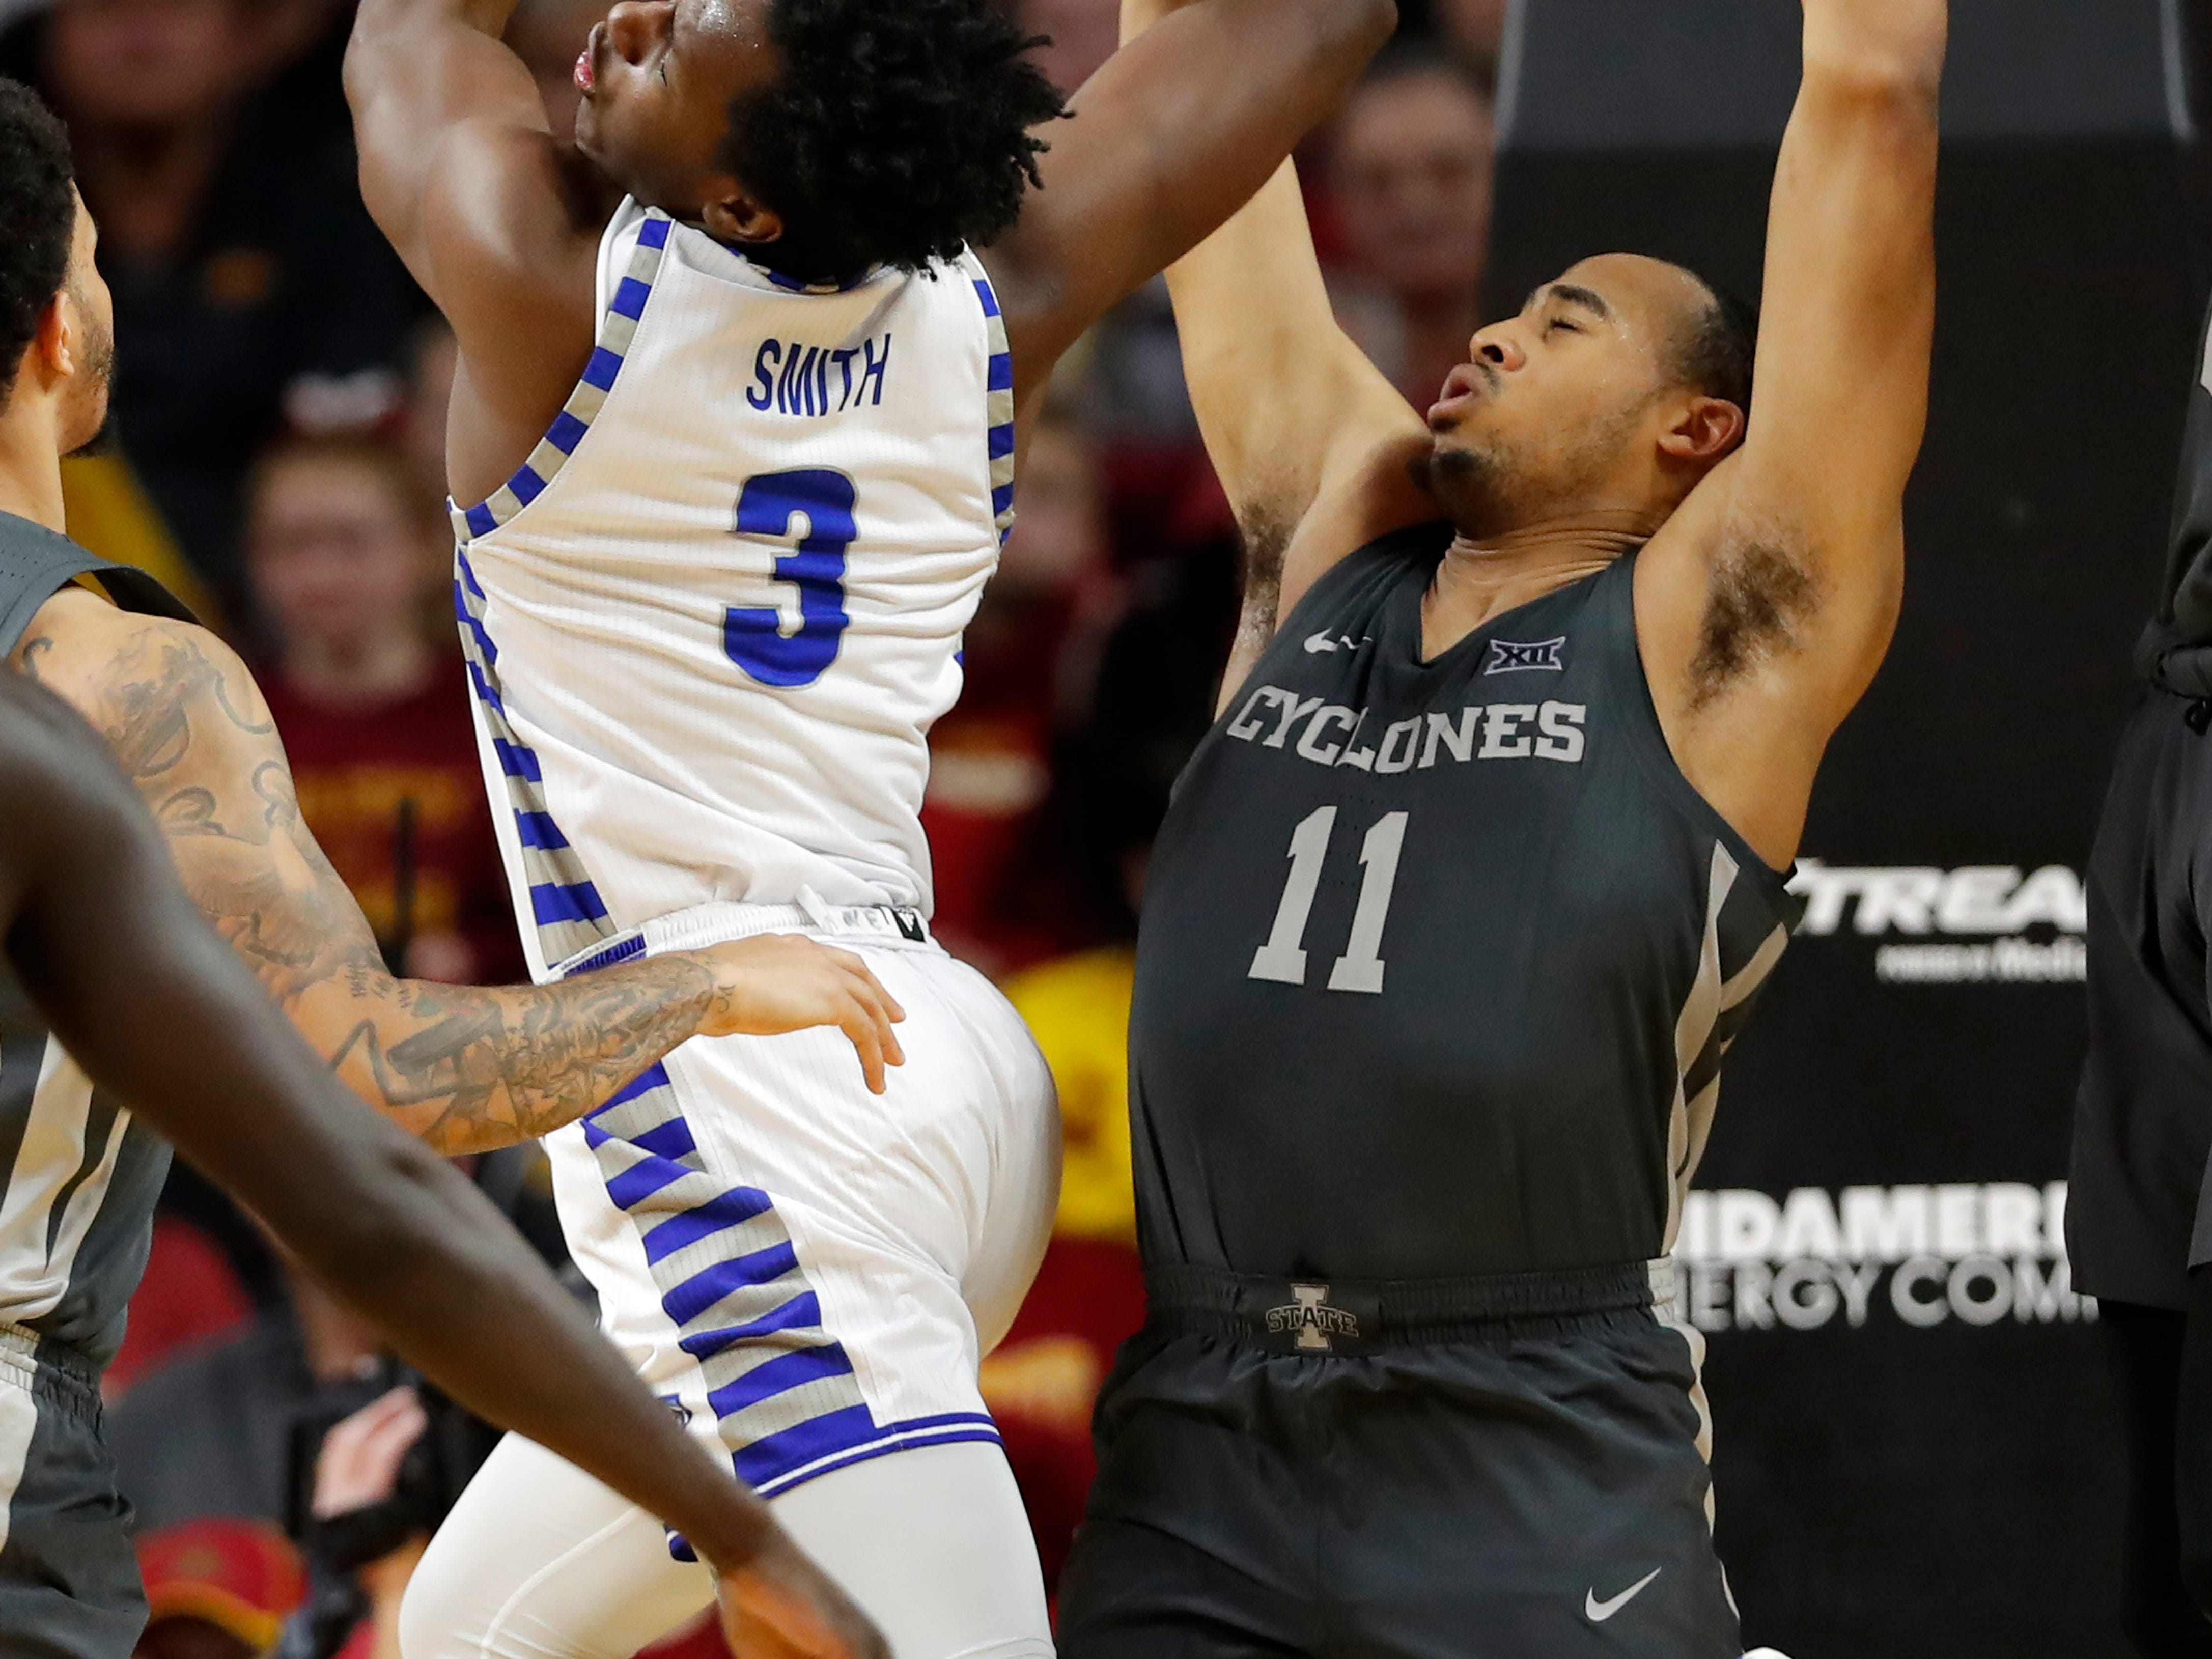 Eastern Illinois guard Mack Smith (3) loses the ball while driving to the basket in front of Iowa State guard Talen Horton-Tucker (11) during the second half of an NCAA college basketball game Friday, Dec. 21, 2018, in Ames, Iowa.